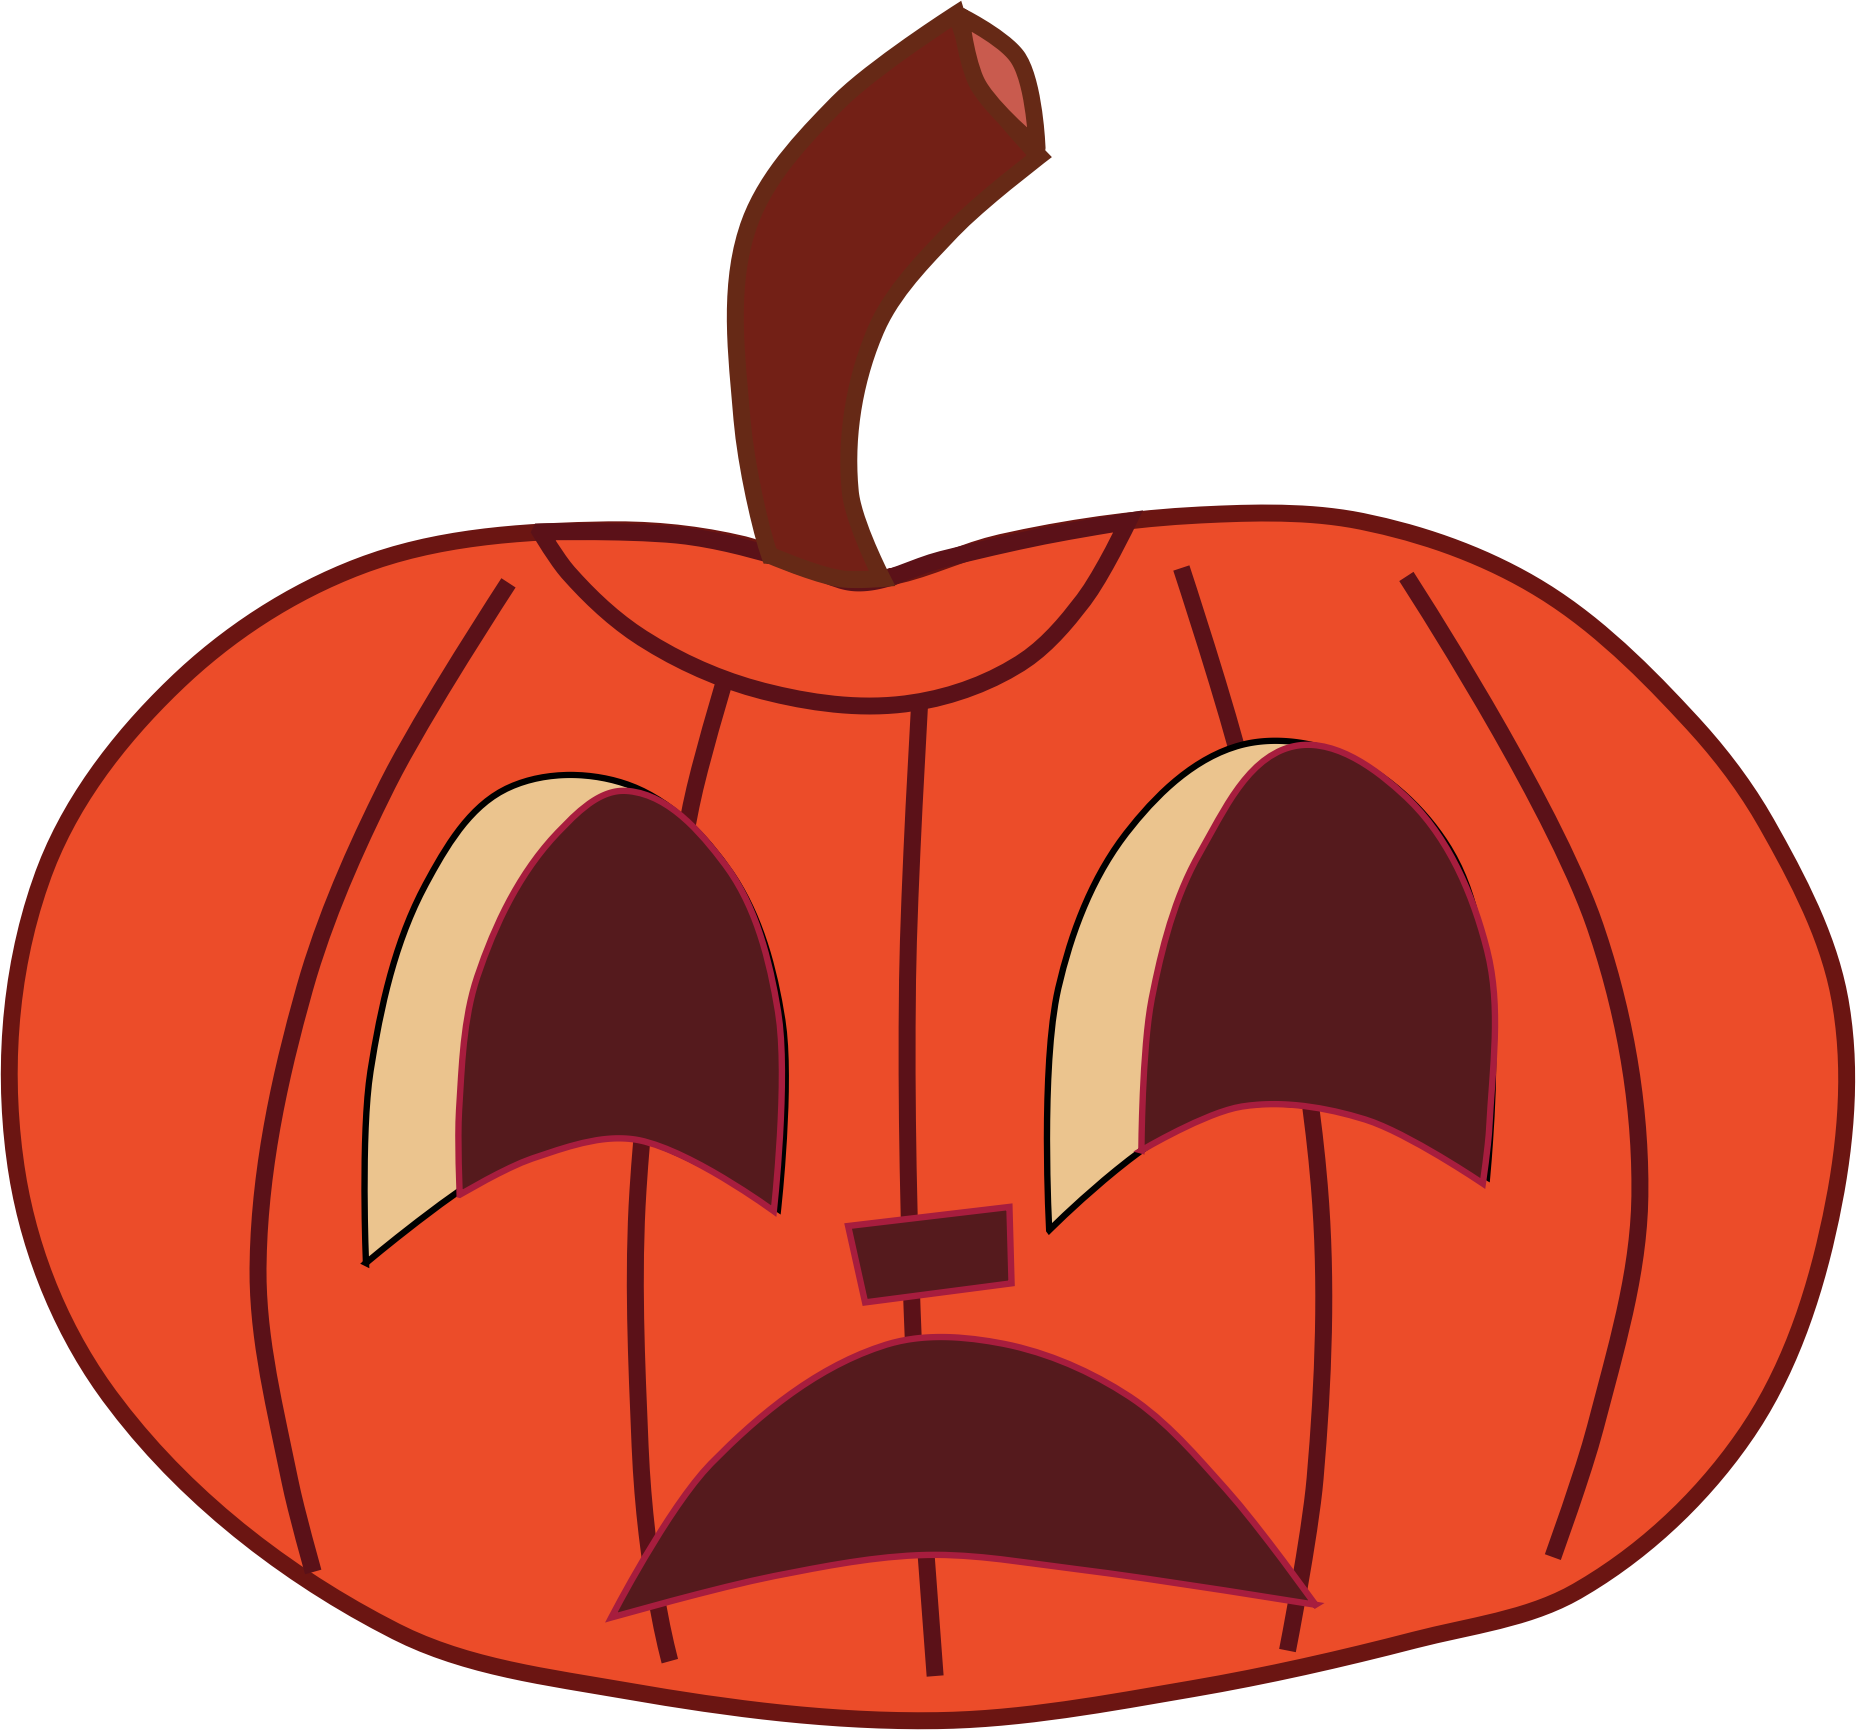 Pumpkin faces clipart free Clipart - Painted Halloween Pumpkin Faces free